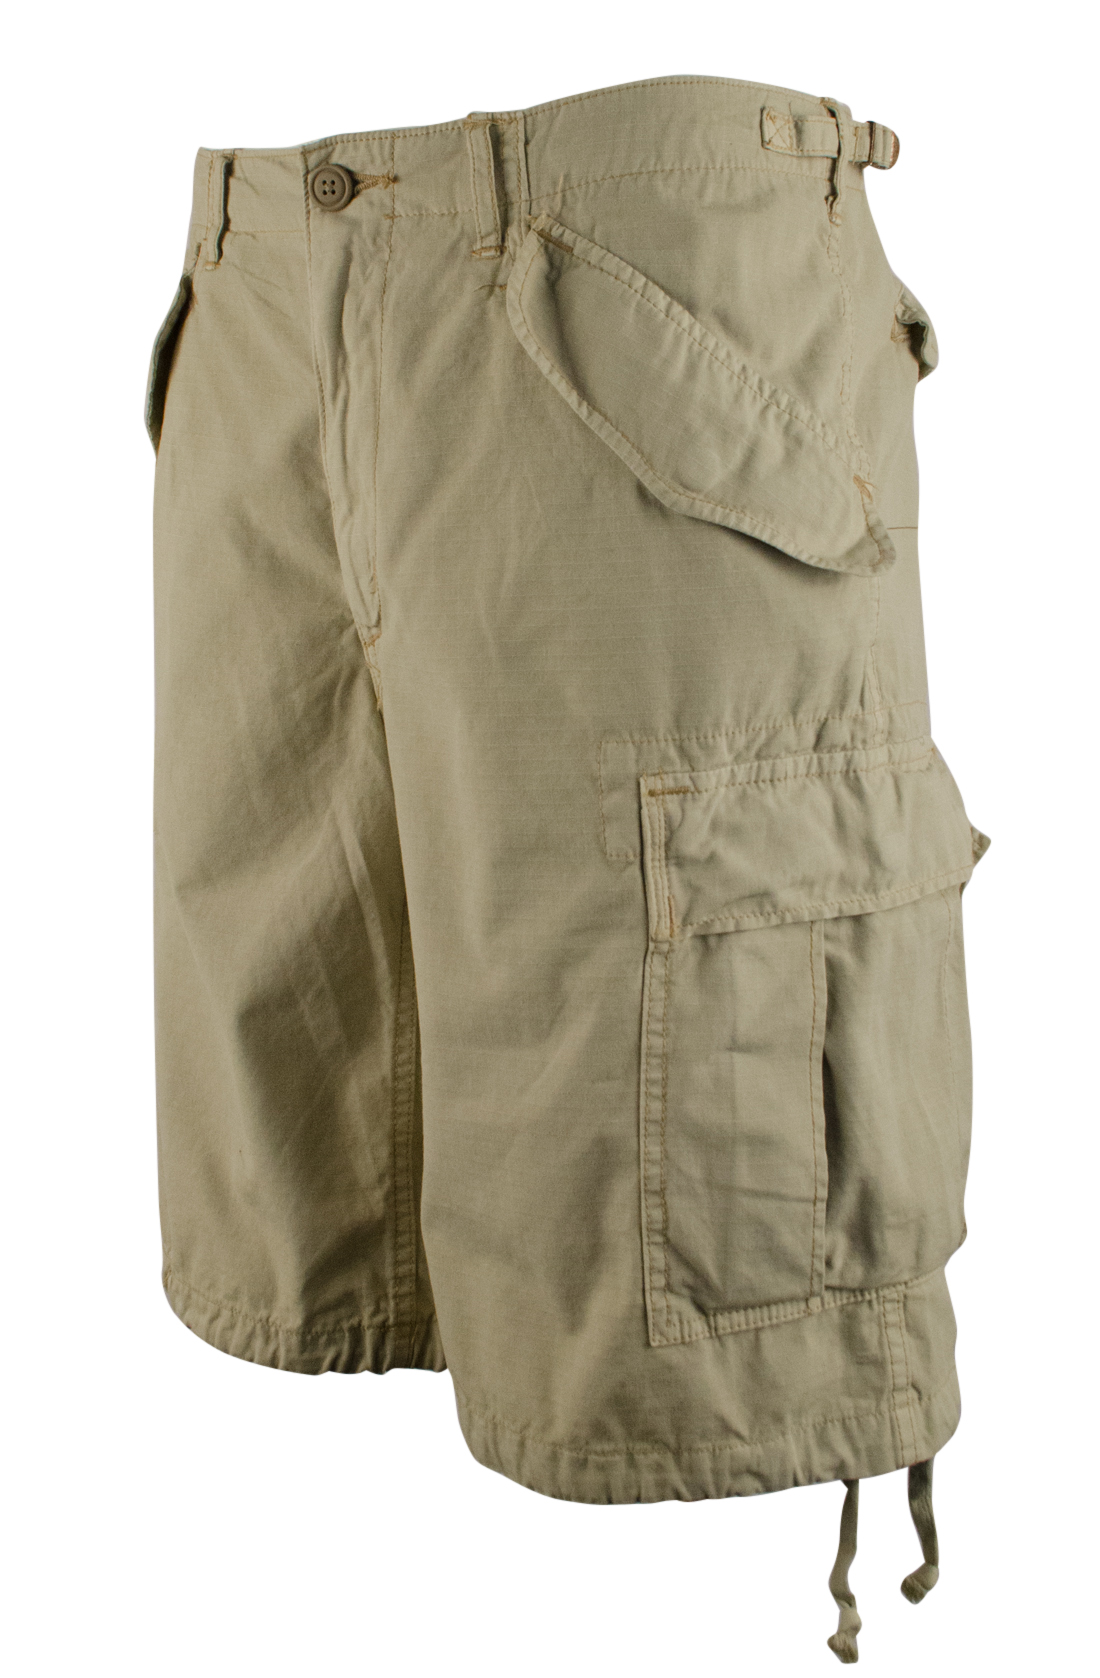 Choose from many styles of comfortable men's big and tall cargo shorts in the quality brands you trust. We feature big mens cargo shorts by Dockers, Columbia, .